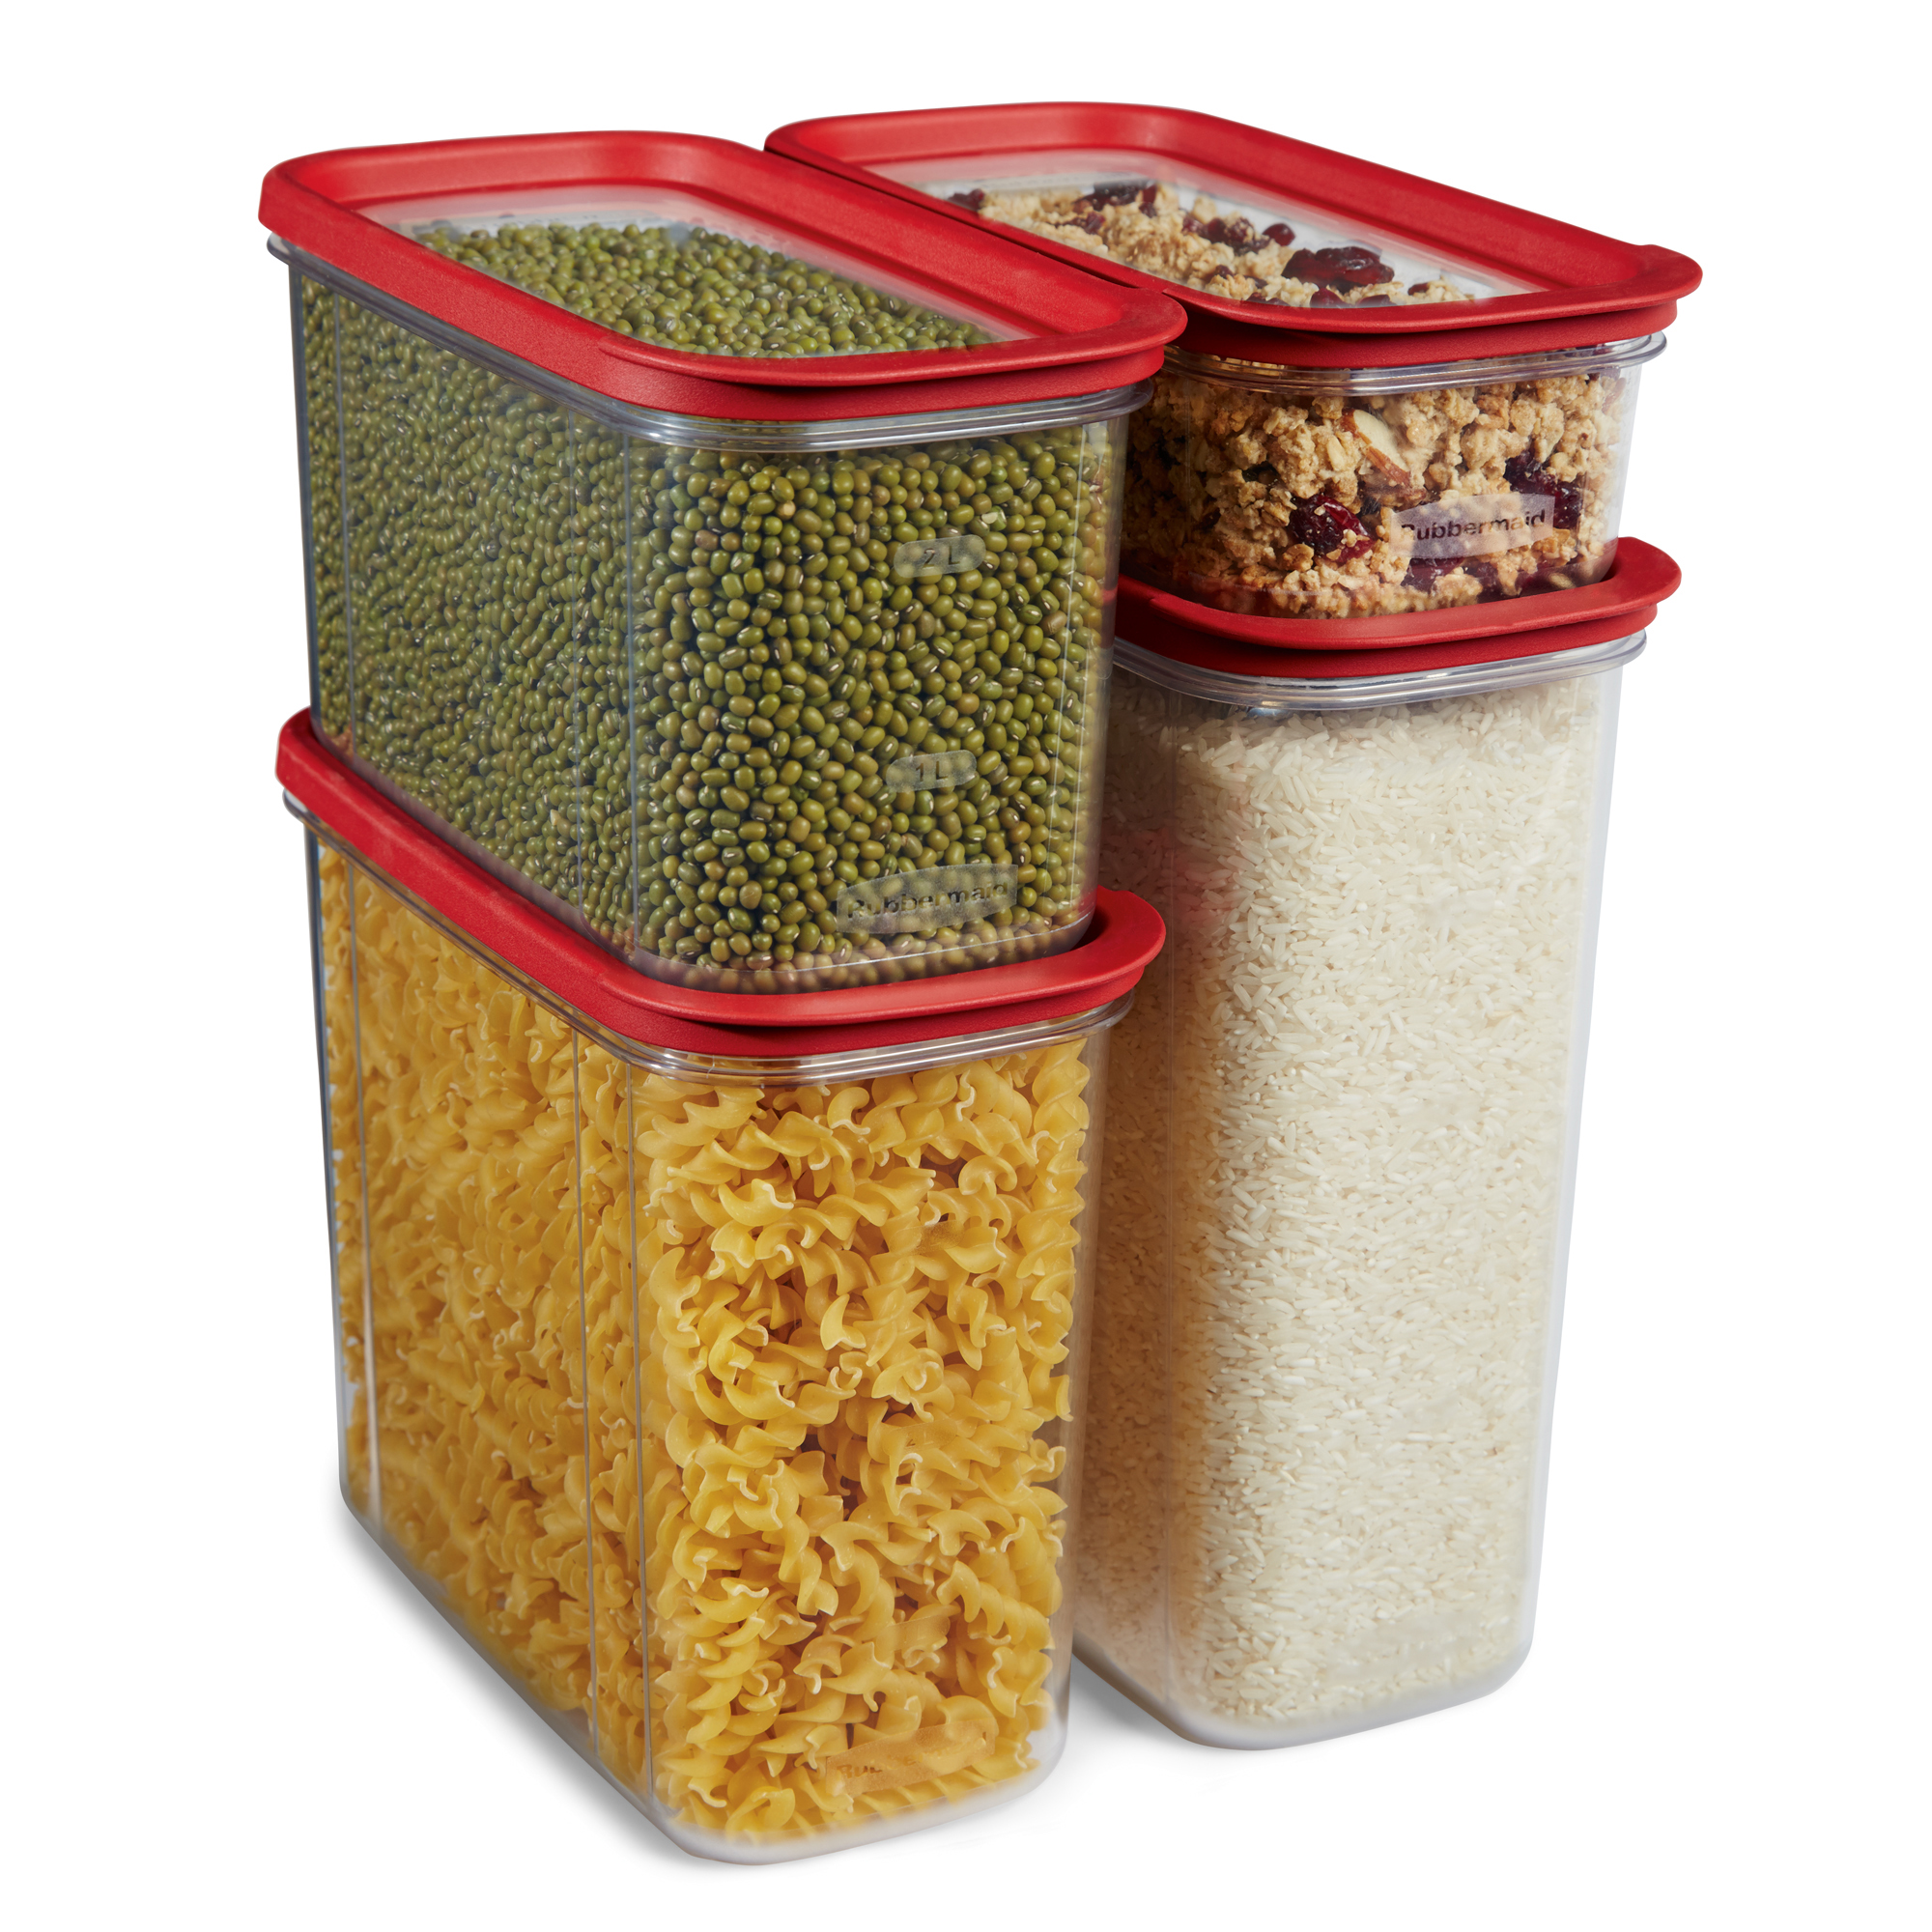 Rubbermaid Modular Plastic Canisters Premium Food Storage